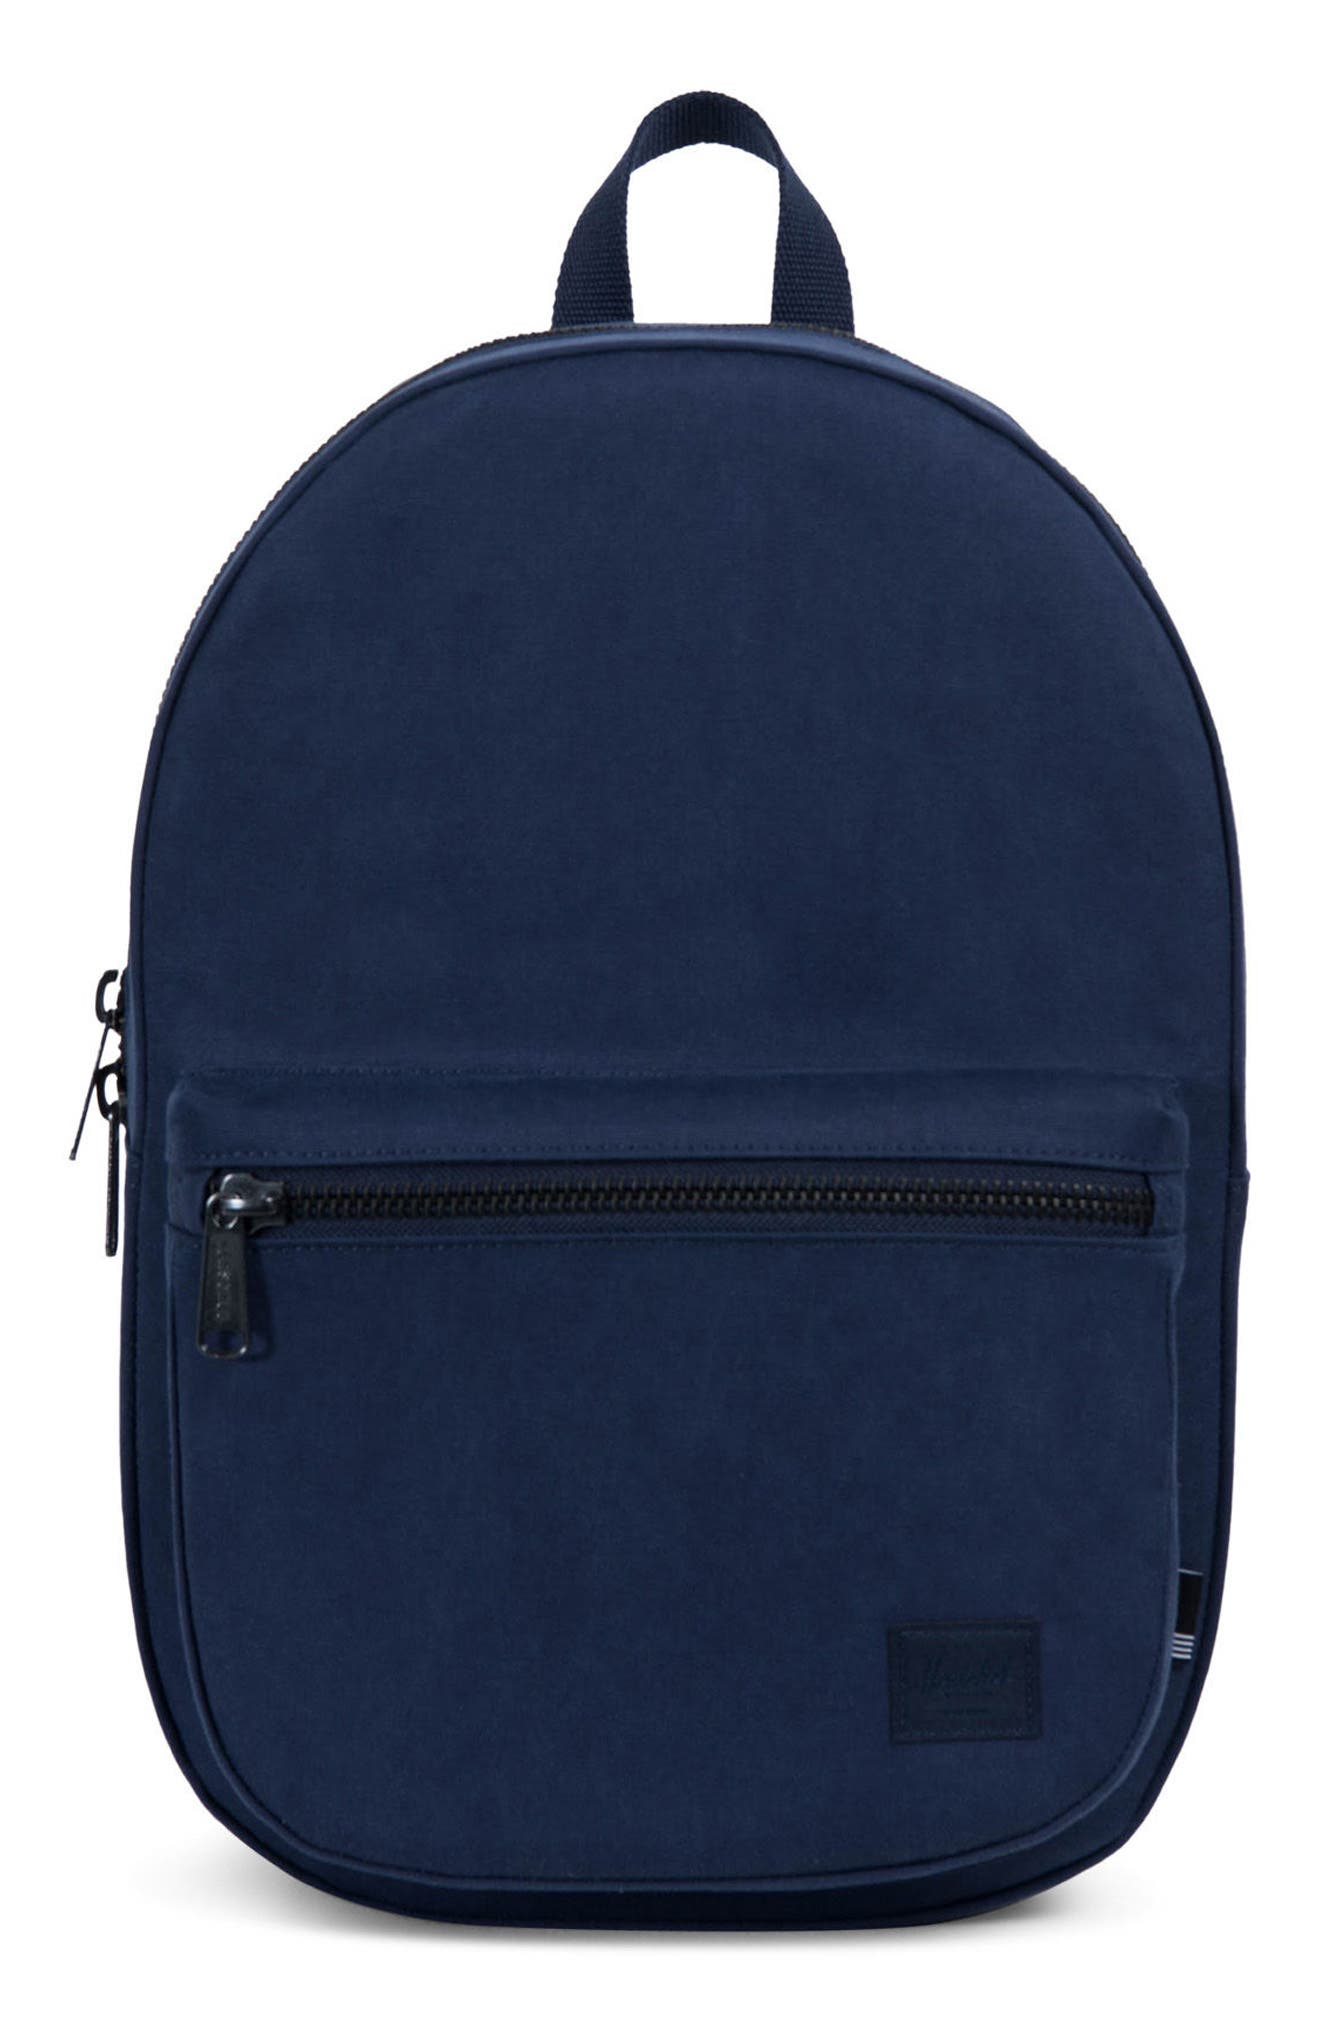 Main Image - Herschel Supply Co. Lawson Backpack